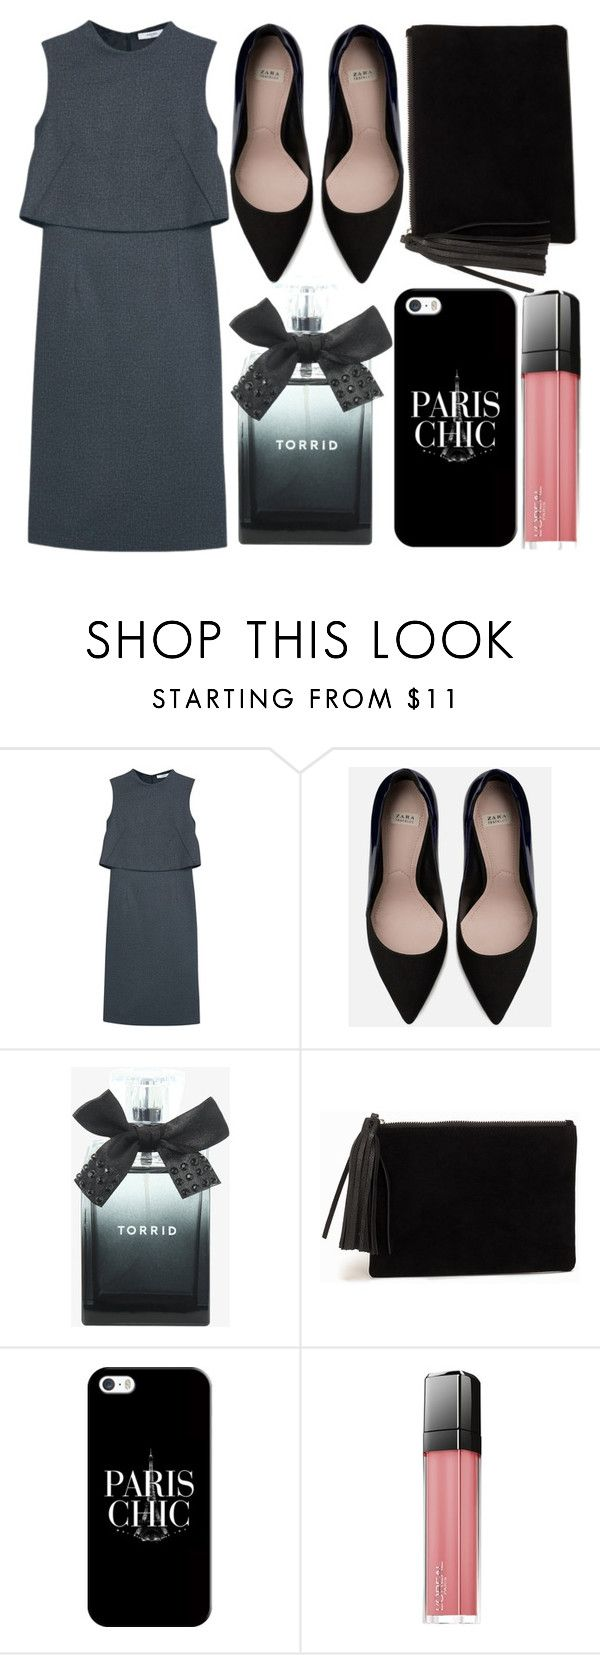 """""""street style"""" by sisaez ❤ liked on Polyvore featuring MANGO, Zara, Torrid, NLY Accessories, Casetify and L'Oréal Paris"""